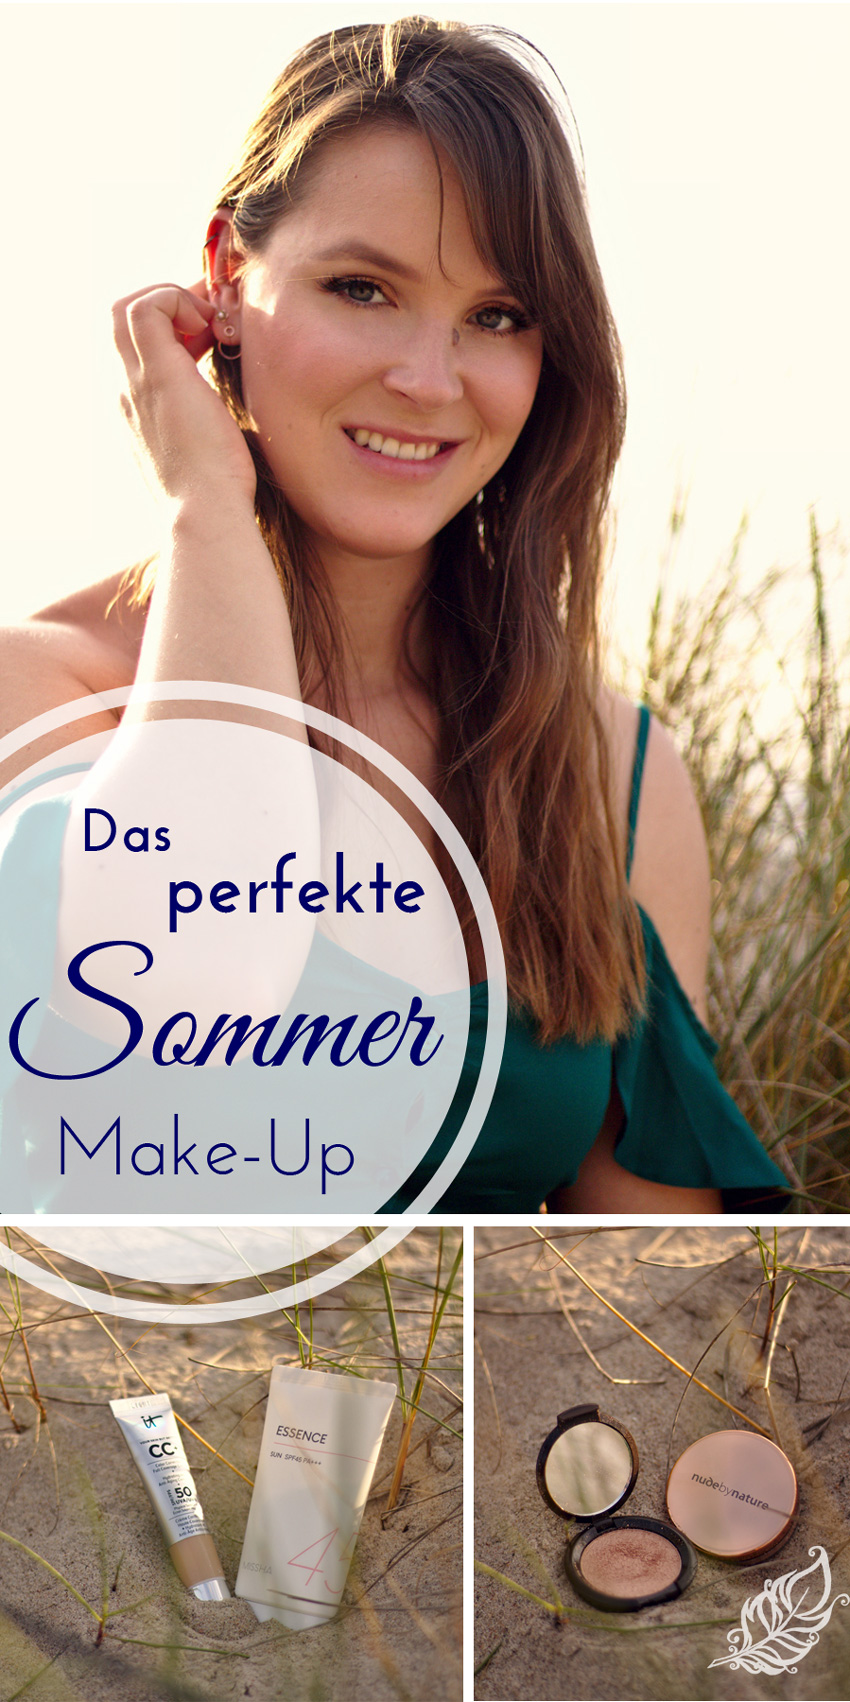 All the wonderful things: Das perfekte Sommer-Make-Up